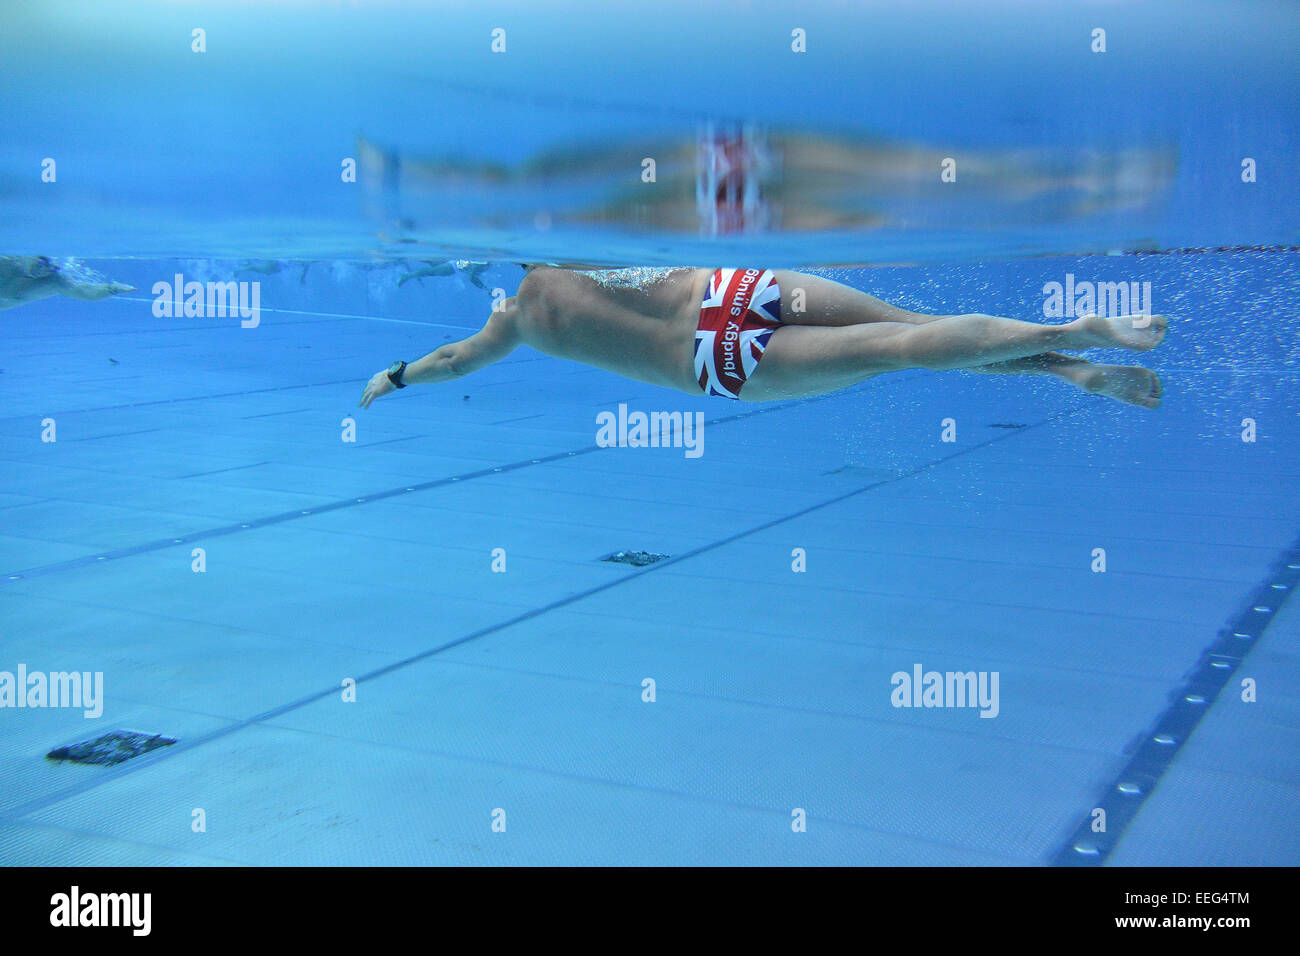 London, UK, 17th January, 2015.  Swimming humour: men's tight shorts also known as budgy smugglers. Credit: - Stock Image